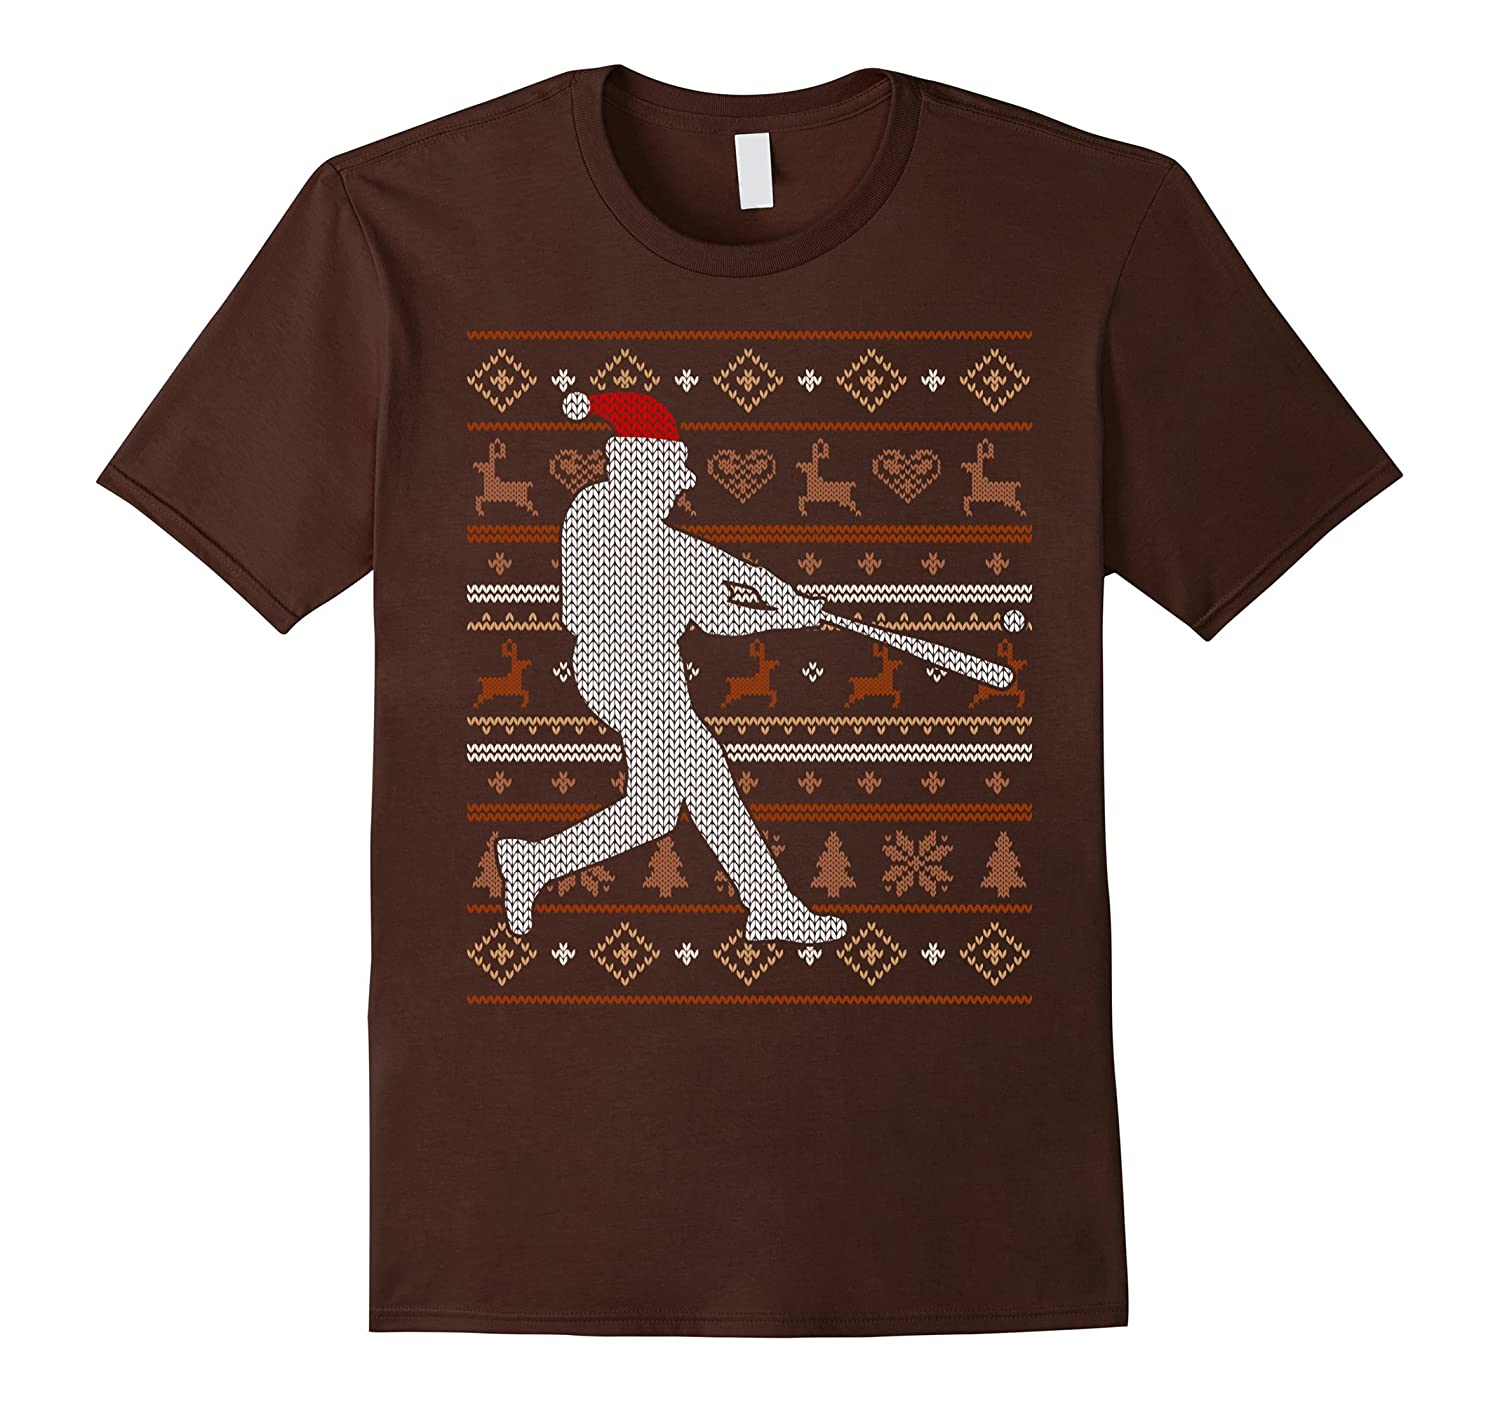 Baseball Ugly Christmas Sweater Sports T-Shirt Xmas Gift Tee-ANZ